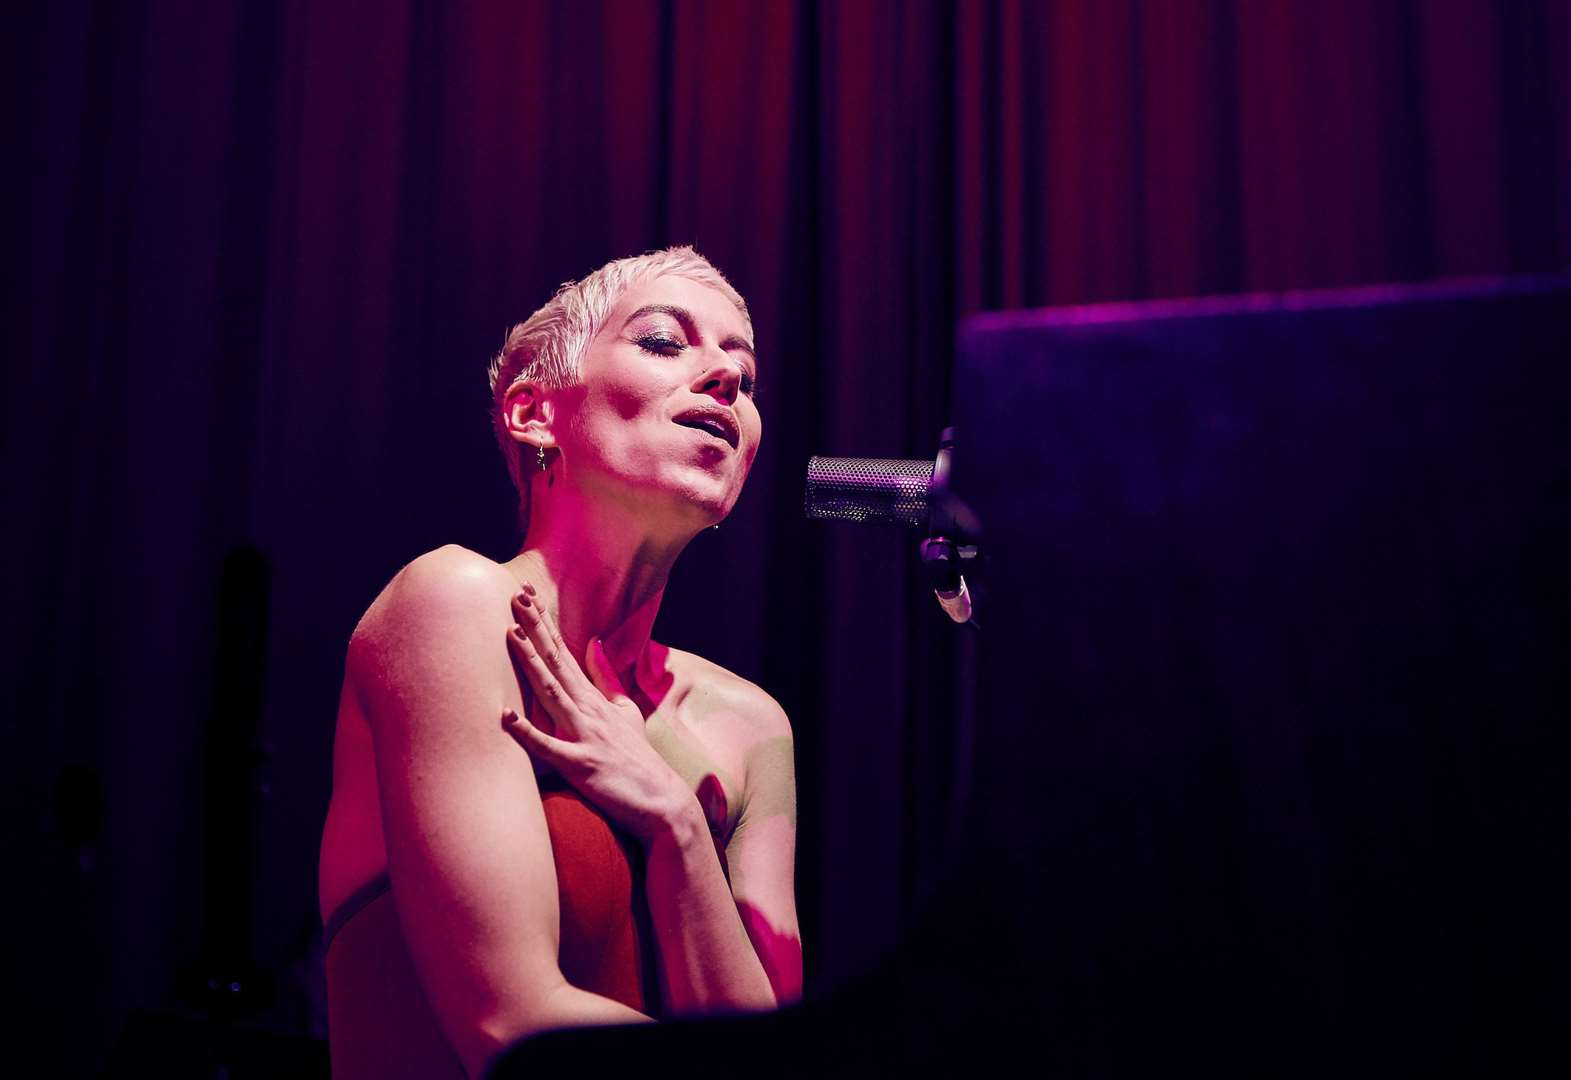 Eurovision star SuRie and comedian Steve Bugeja head feast of music and comedy at Retune